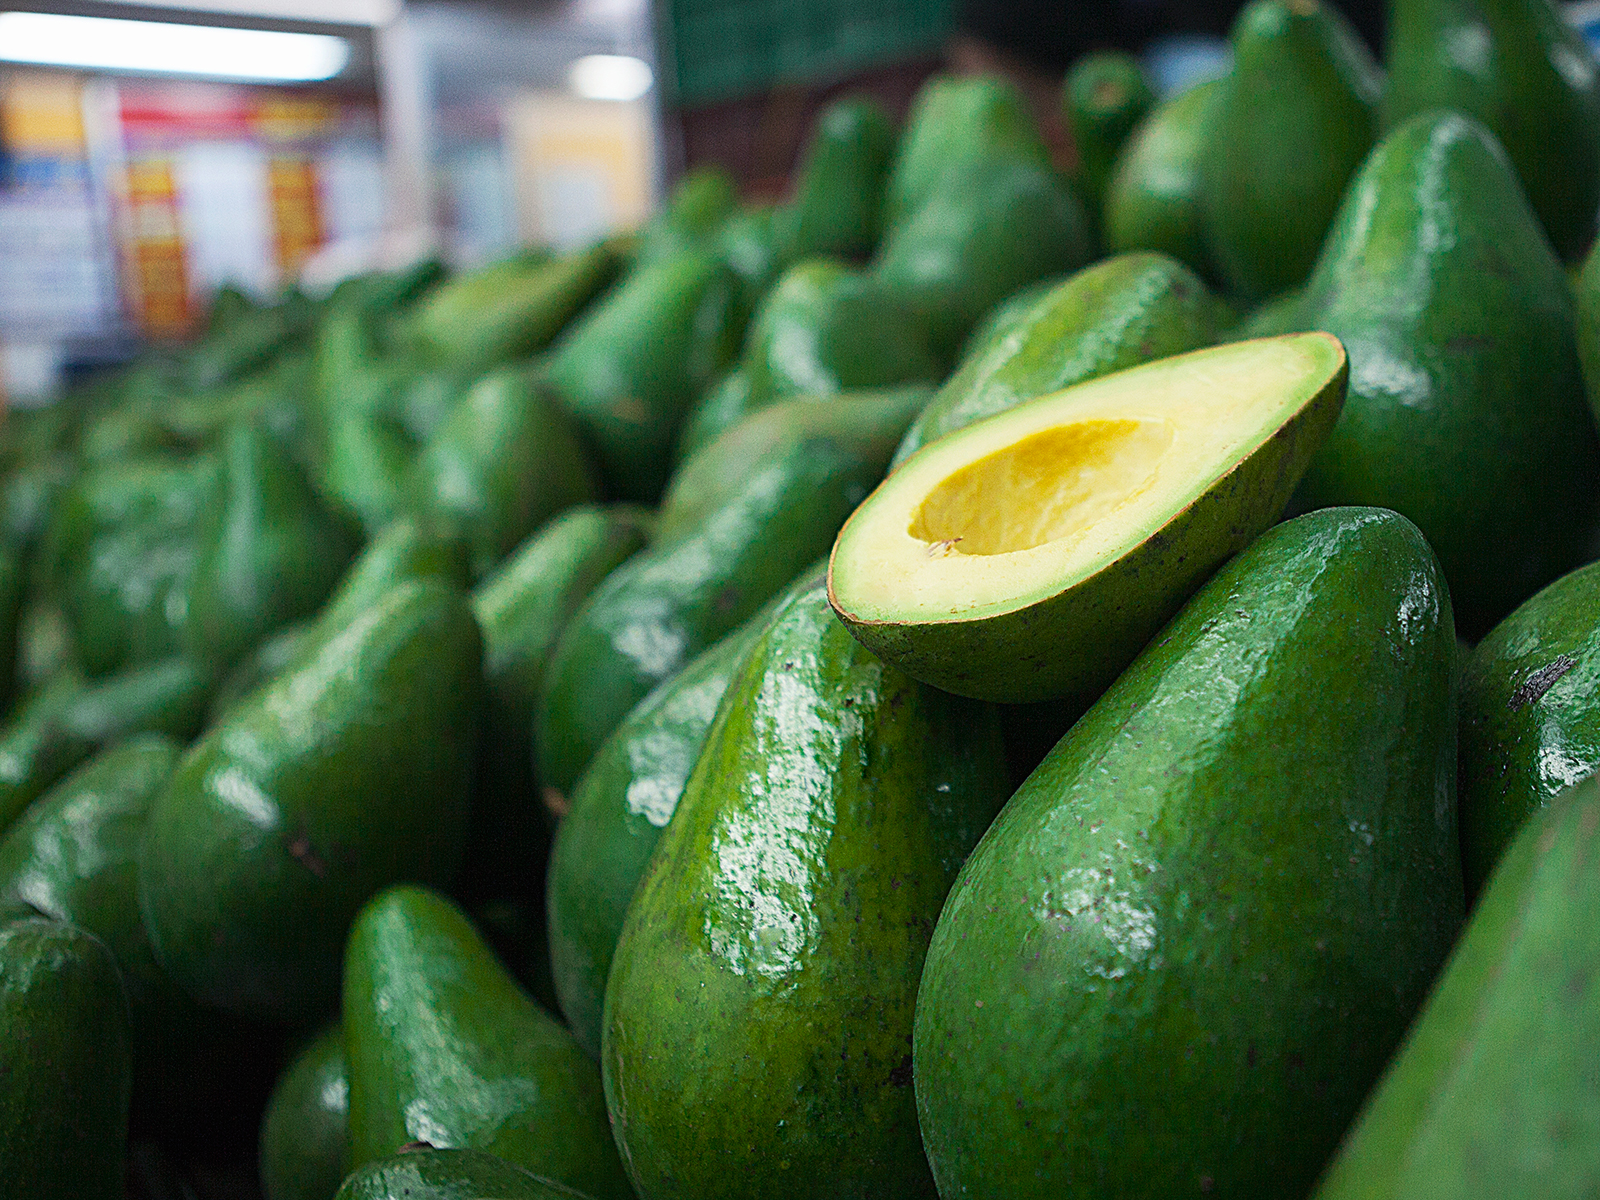 Colombian Avocados Approved for U.S. Import